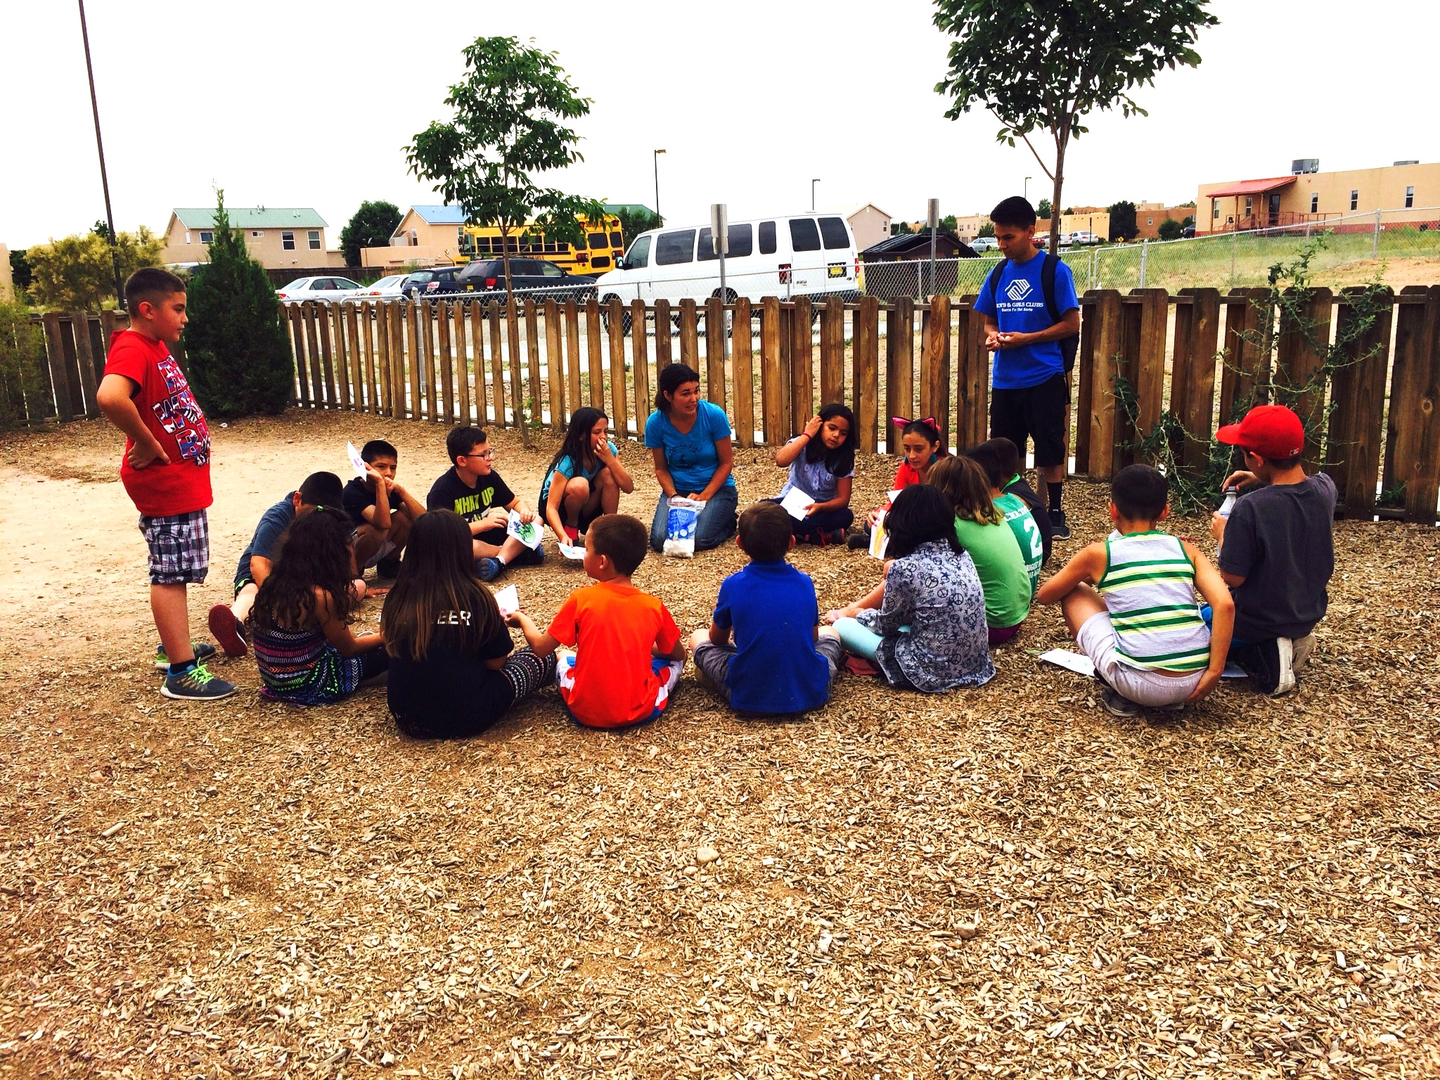 New mexico rio arriba county abiquiu -  Boys Girls Clubs Of Santa Fe Del Norte Has Provided At Risk Children Ages Of 5 To18 With A Safe Place To Learn And Grow In Northern New Mexico